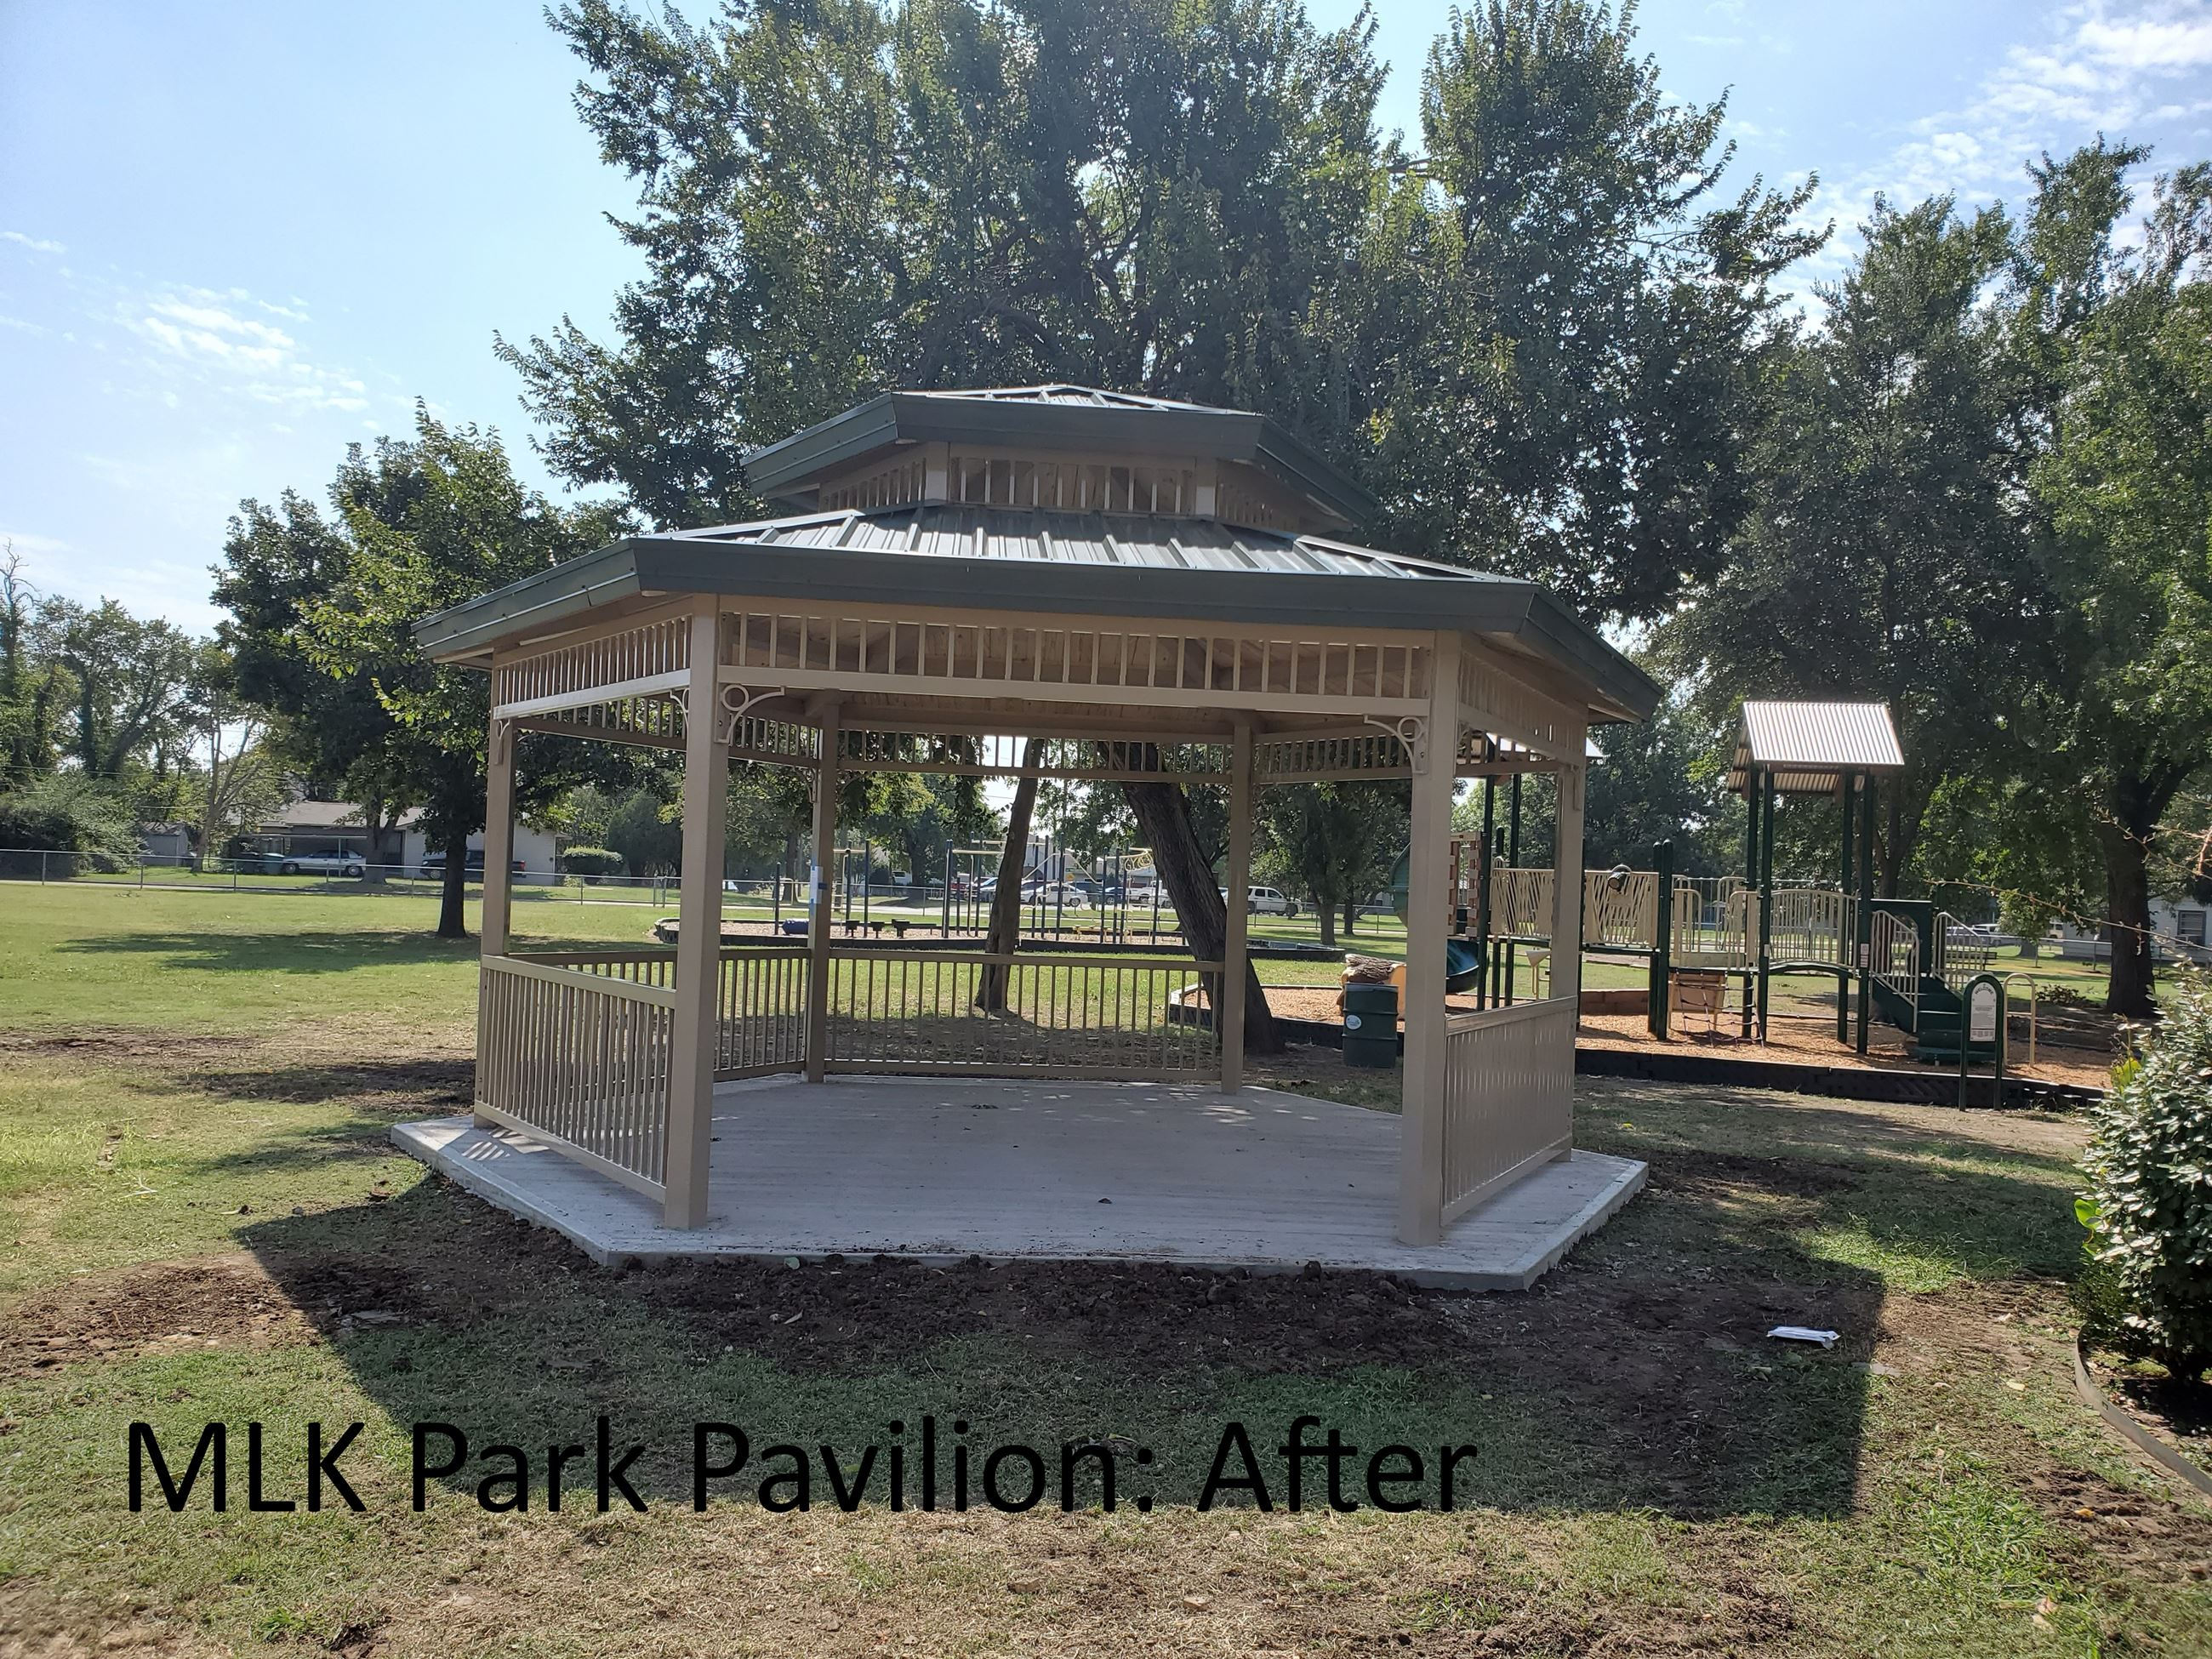 MLK Pavilion: After